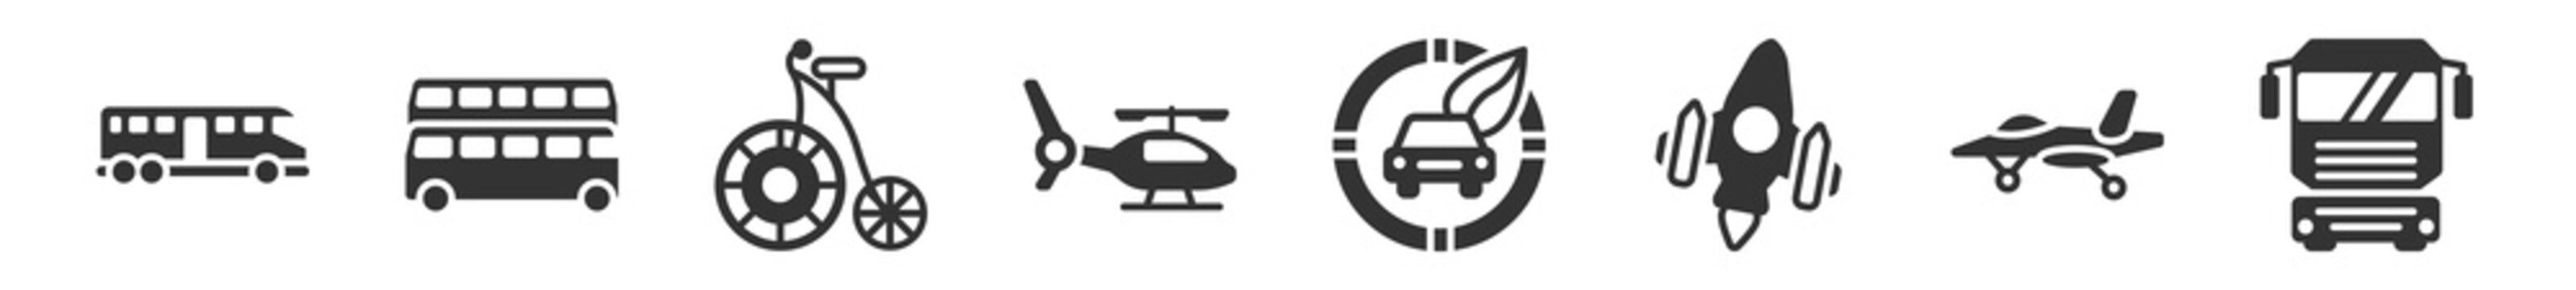 filled set of transport icons. glyph vector icons such as bus vehicle, london, antique bicycle, chopper, zero emission badge, truck front view. vector illustration.